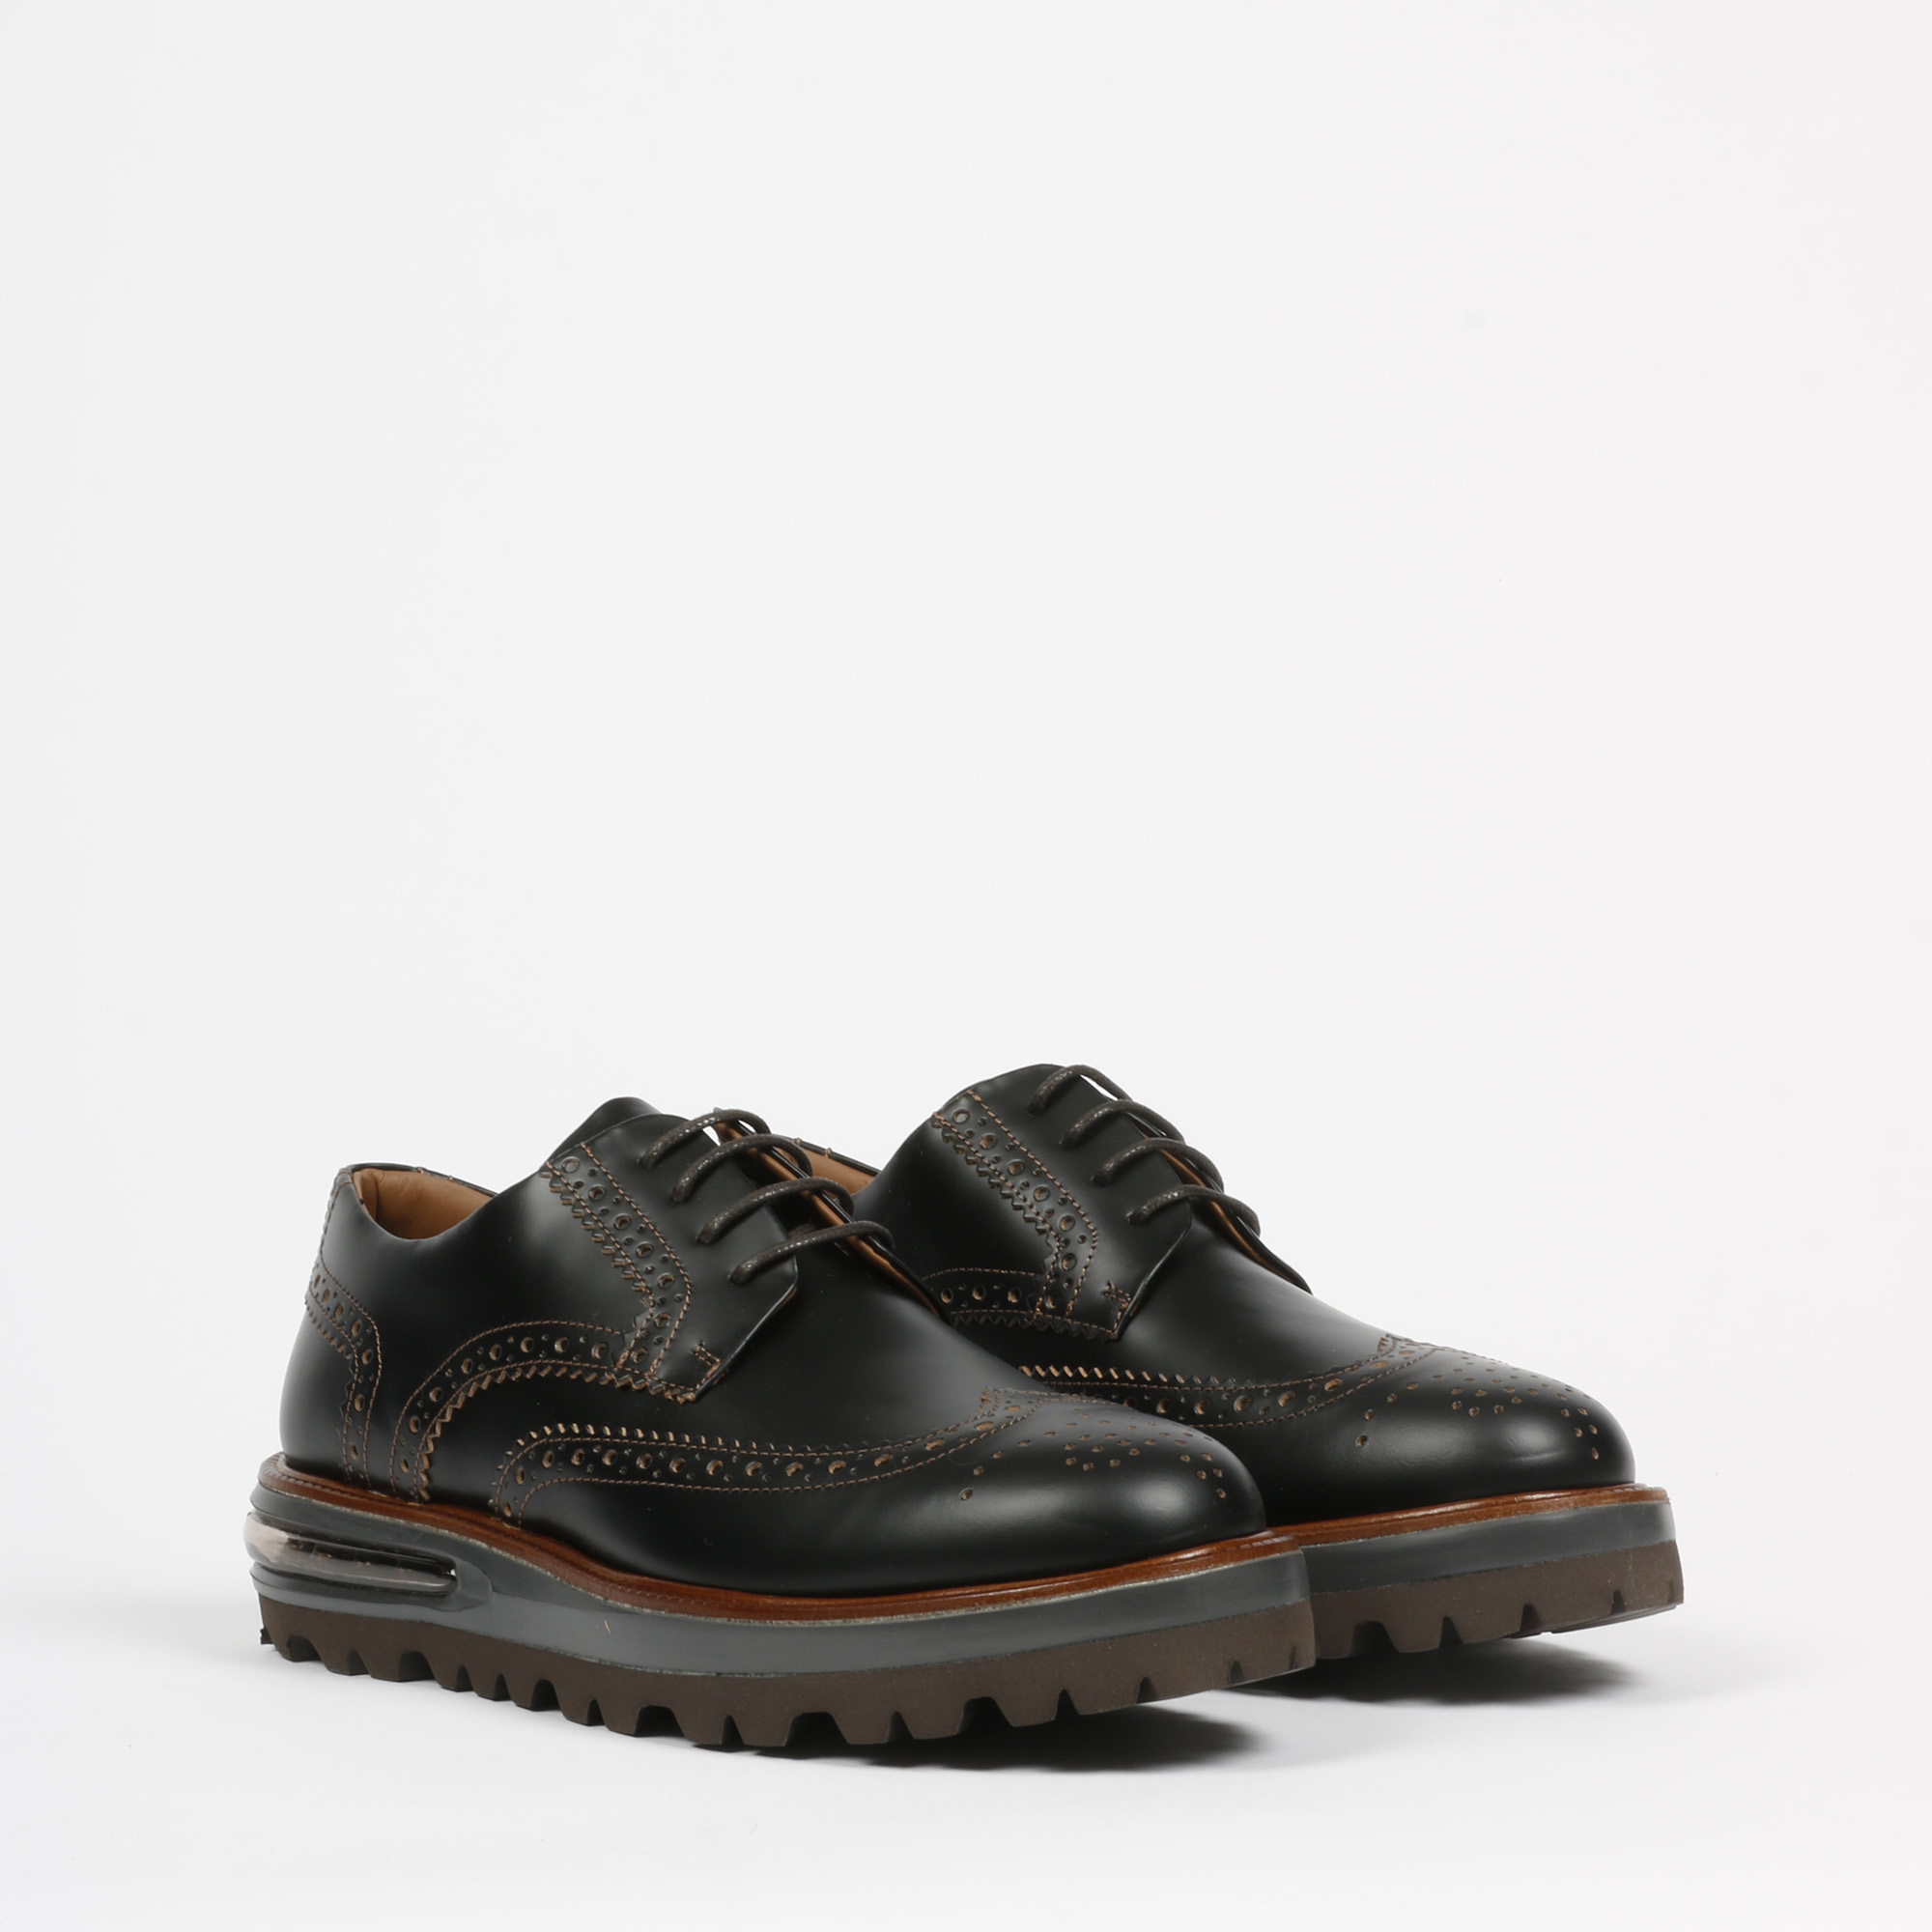 Air brogue heritage leather - Nero